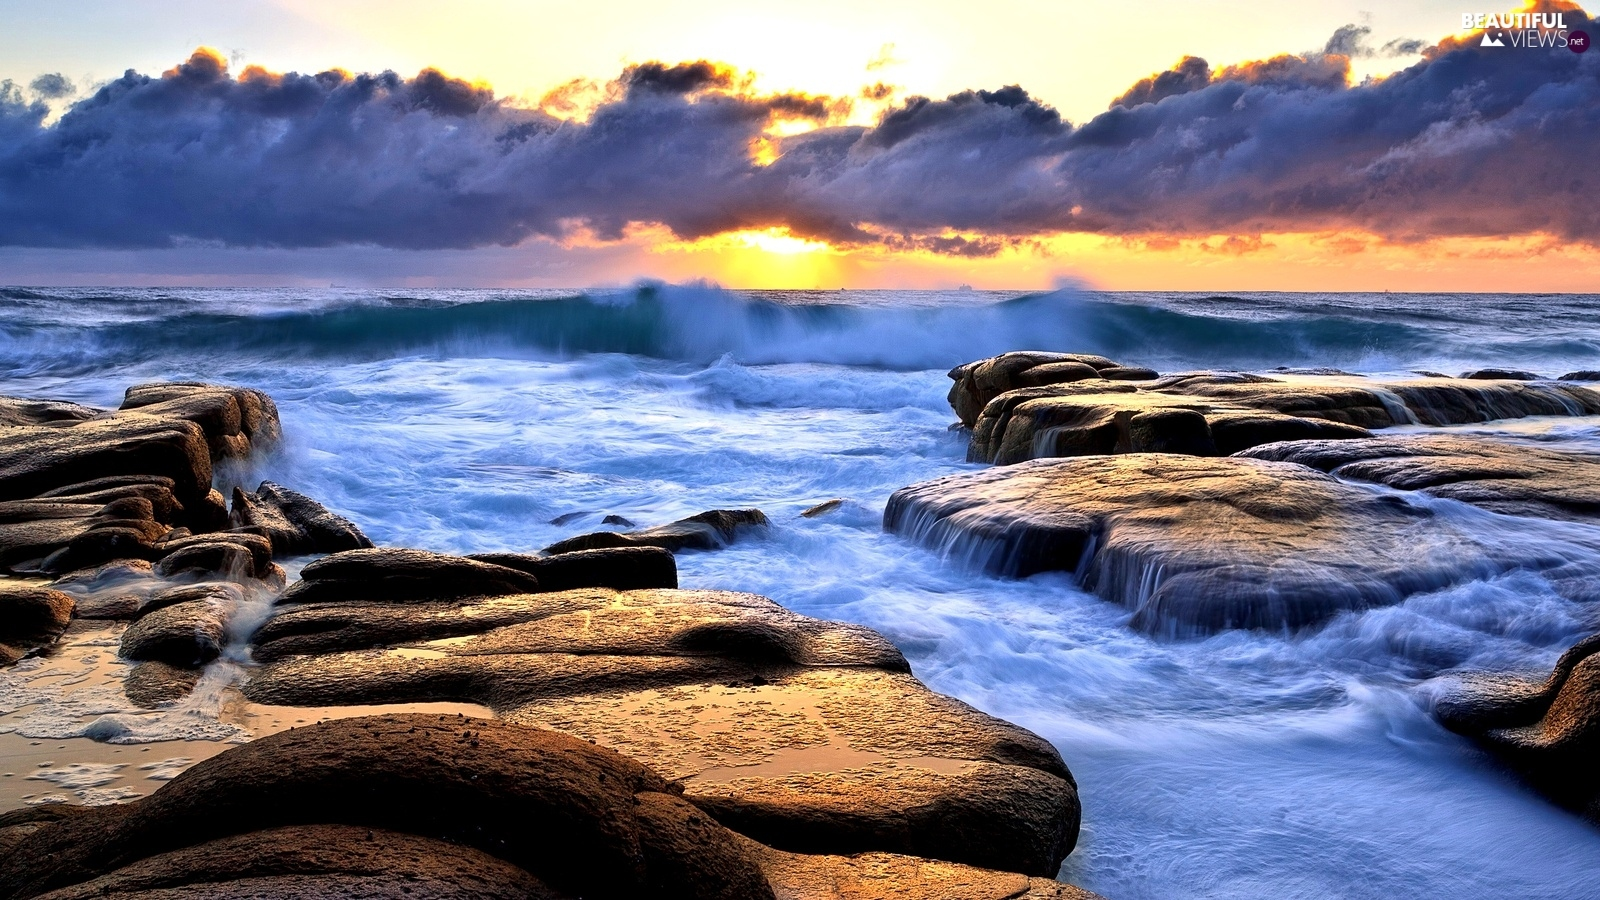 Sky, Waves, Stones, clouds